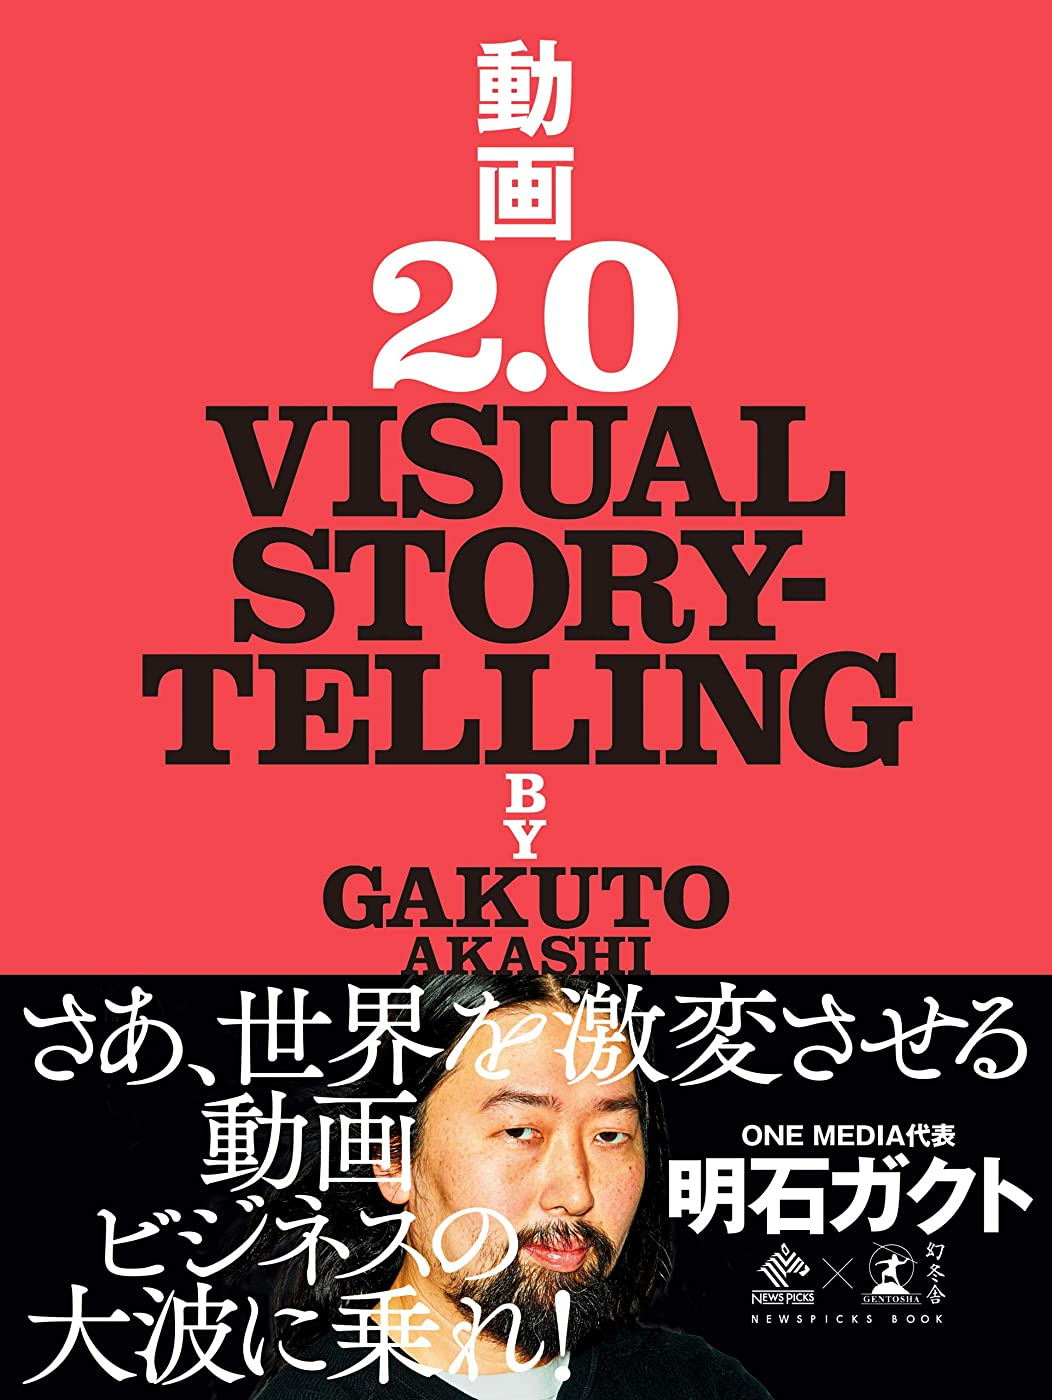 民兵試用有名人動画2.0 VISUAL STORYTELLING (NewsPicks Book)